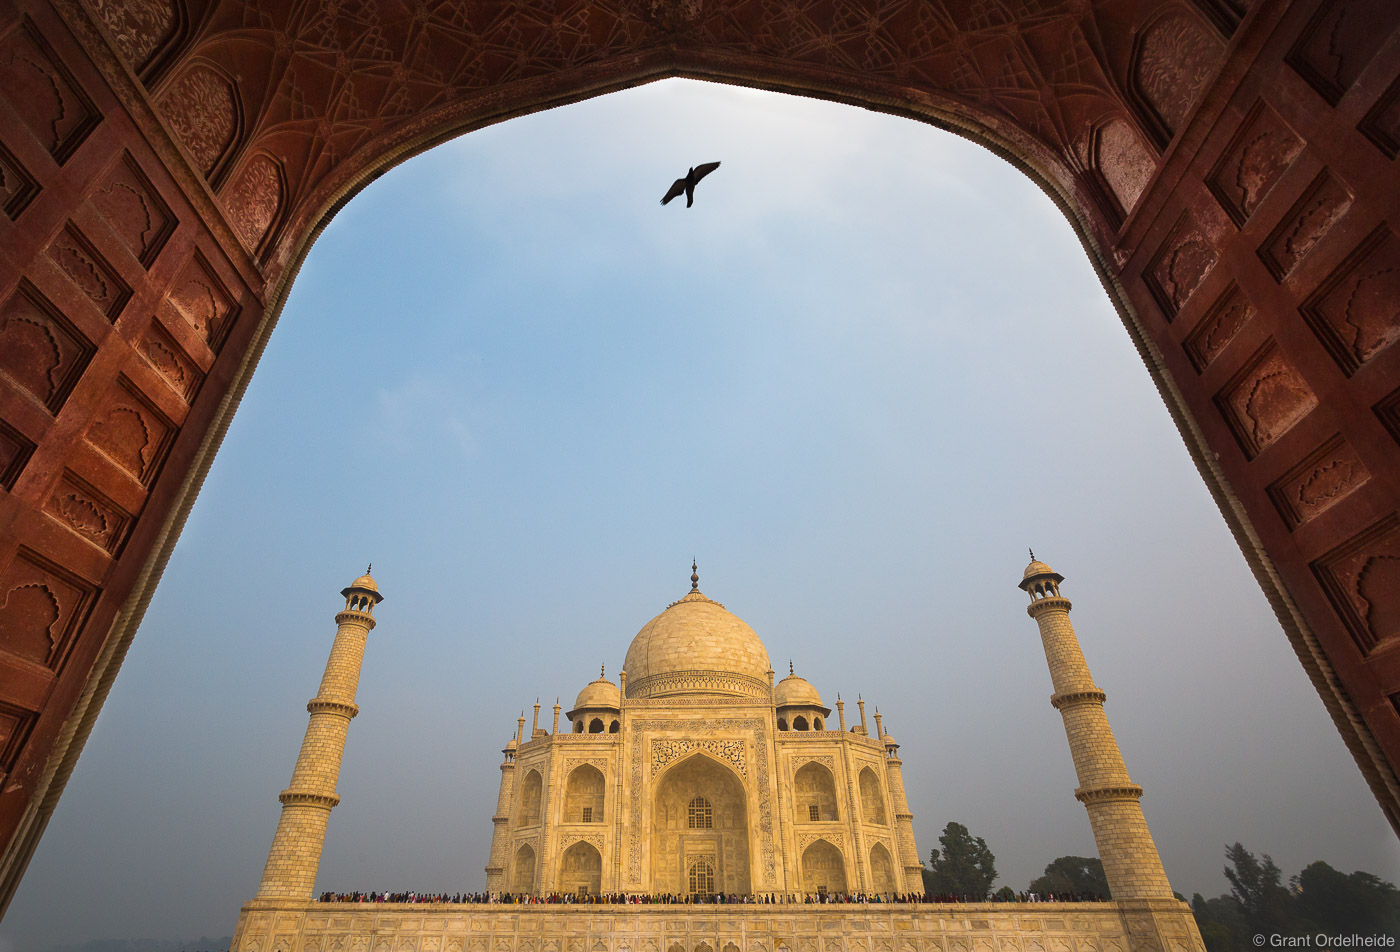 taj, mahal, famous, agra, india, structures, world, mughal, architecture, photo